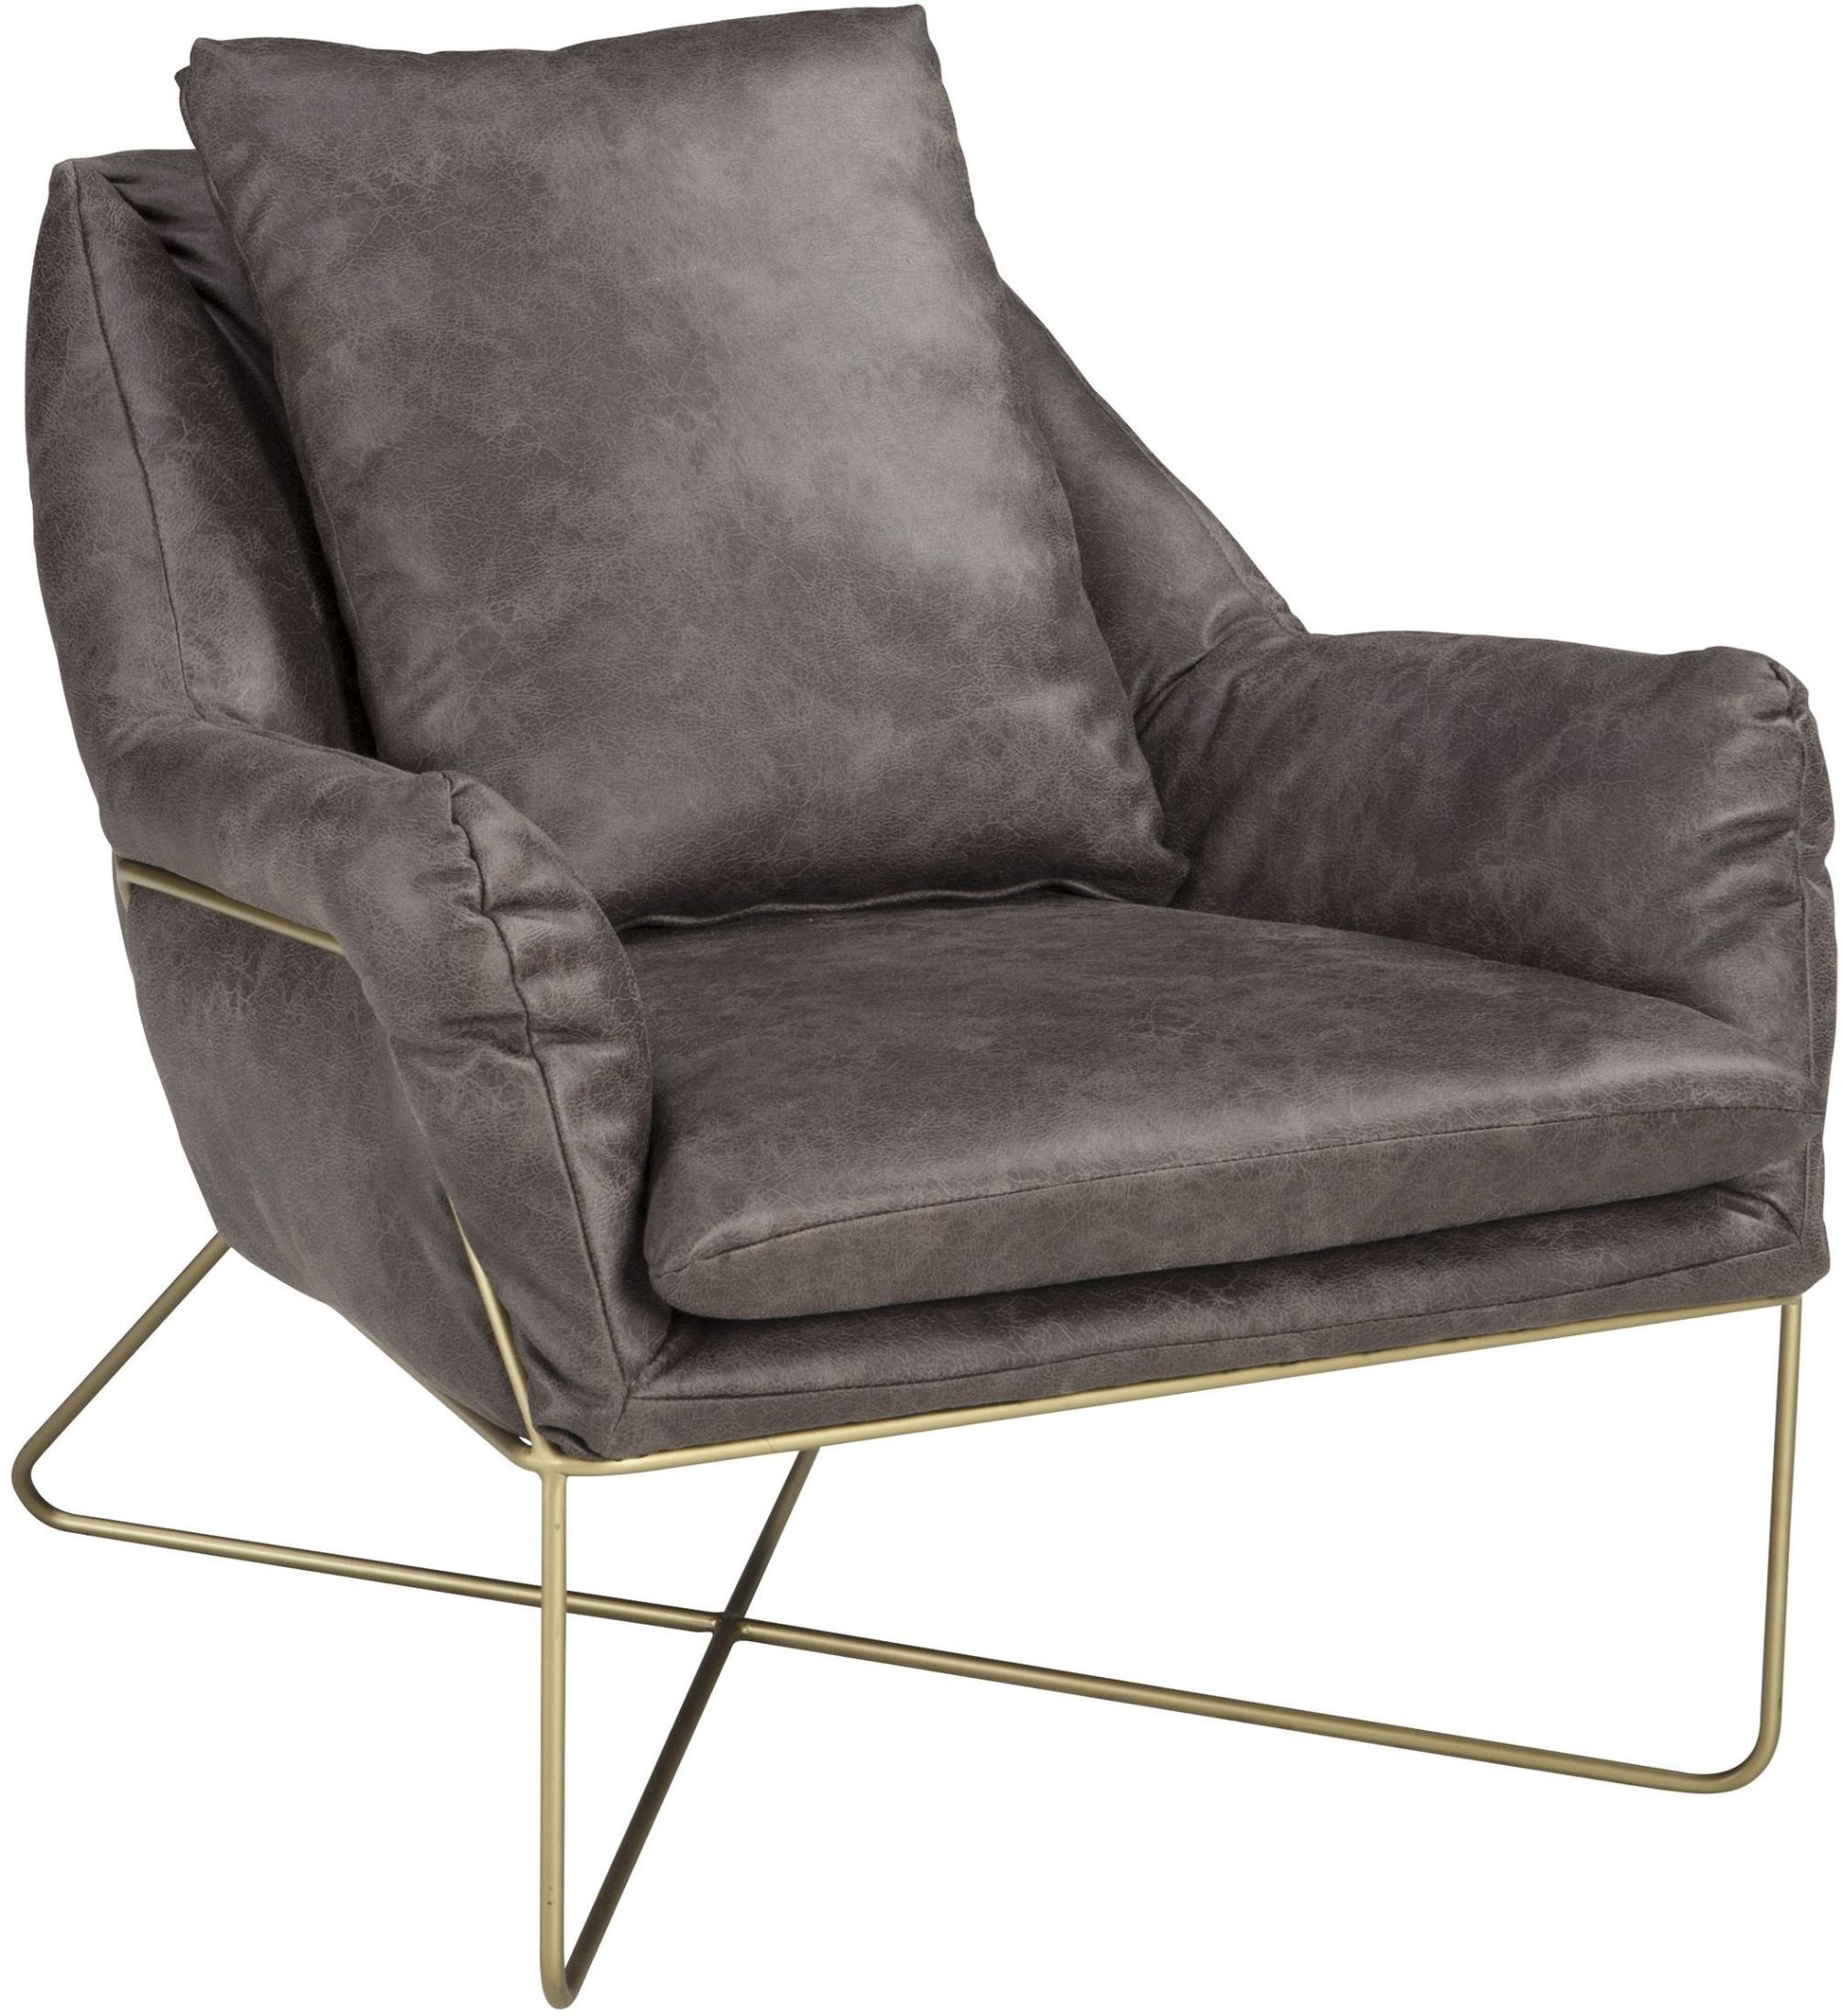 Crosshaven Dark Gray Accent Chair from Ashley